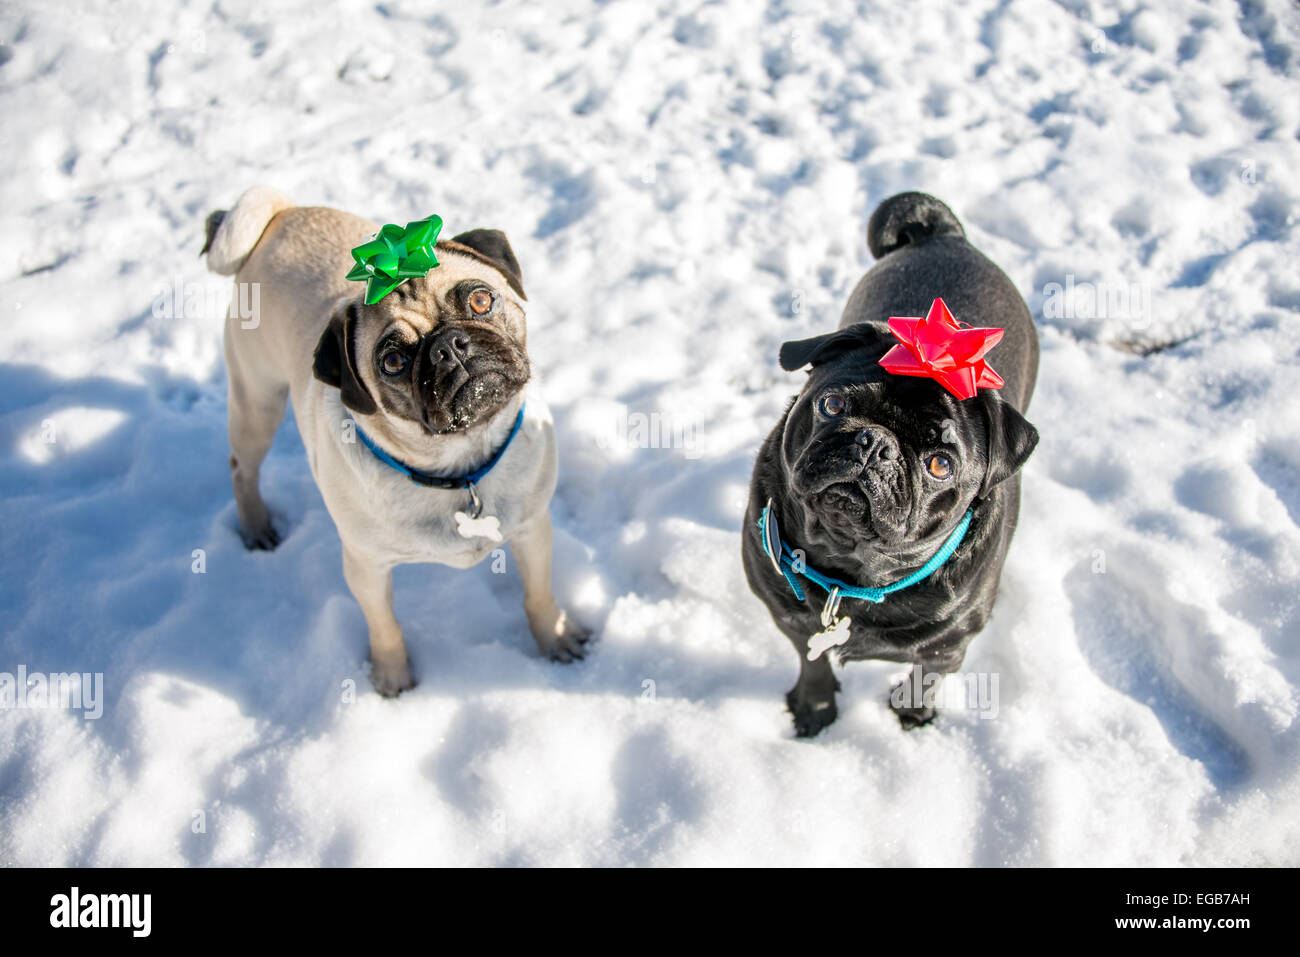 A couple of pugs wearing bows on their heads. - Stock Image